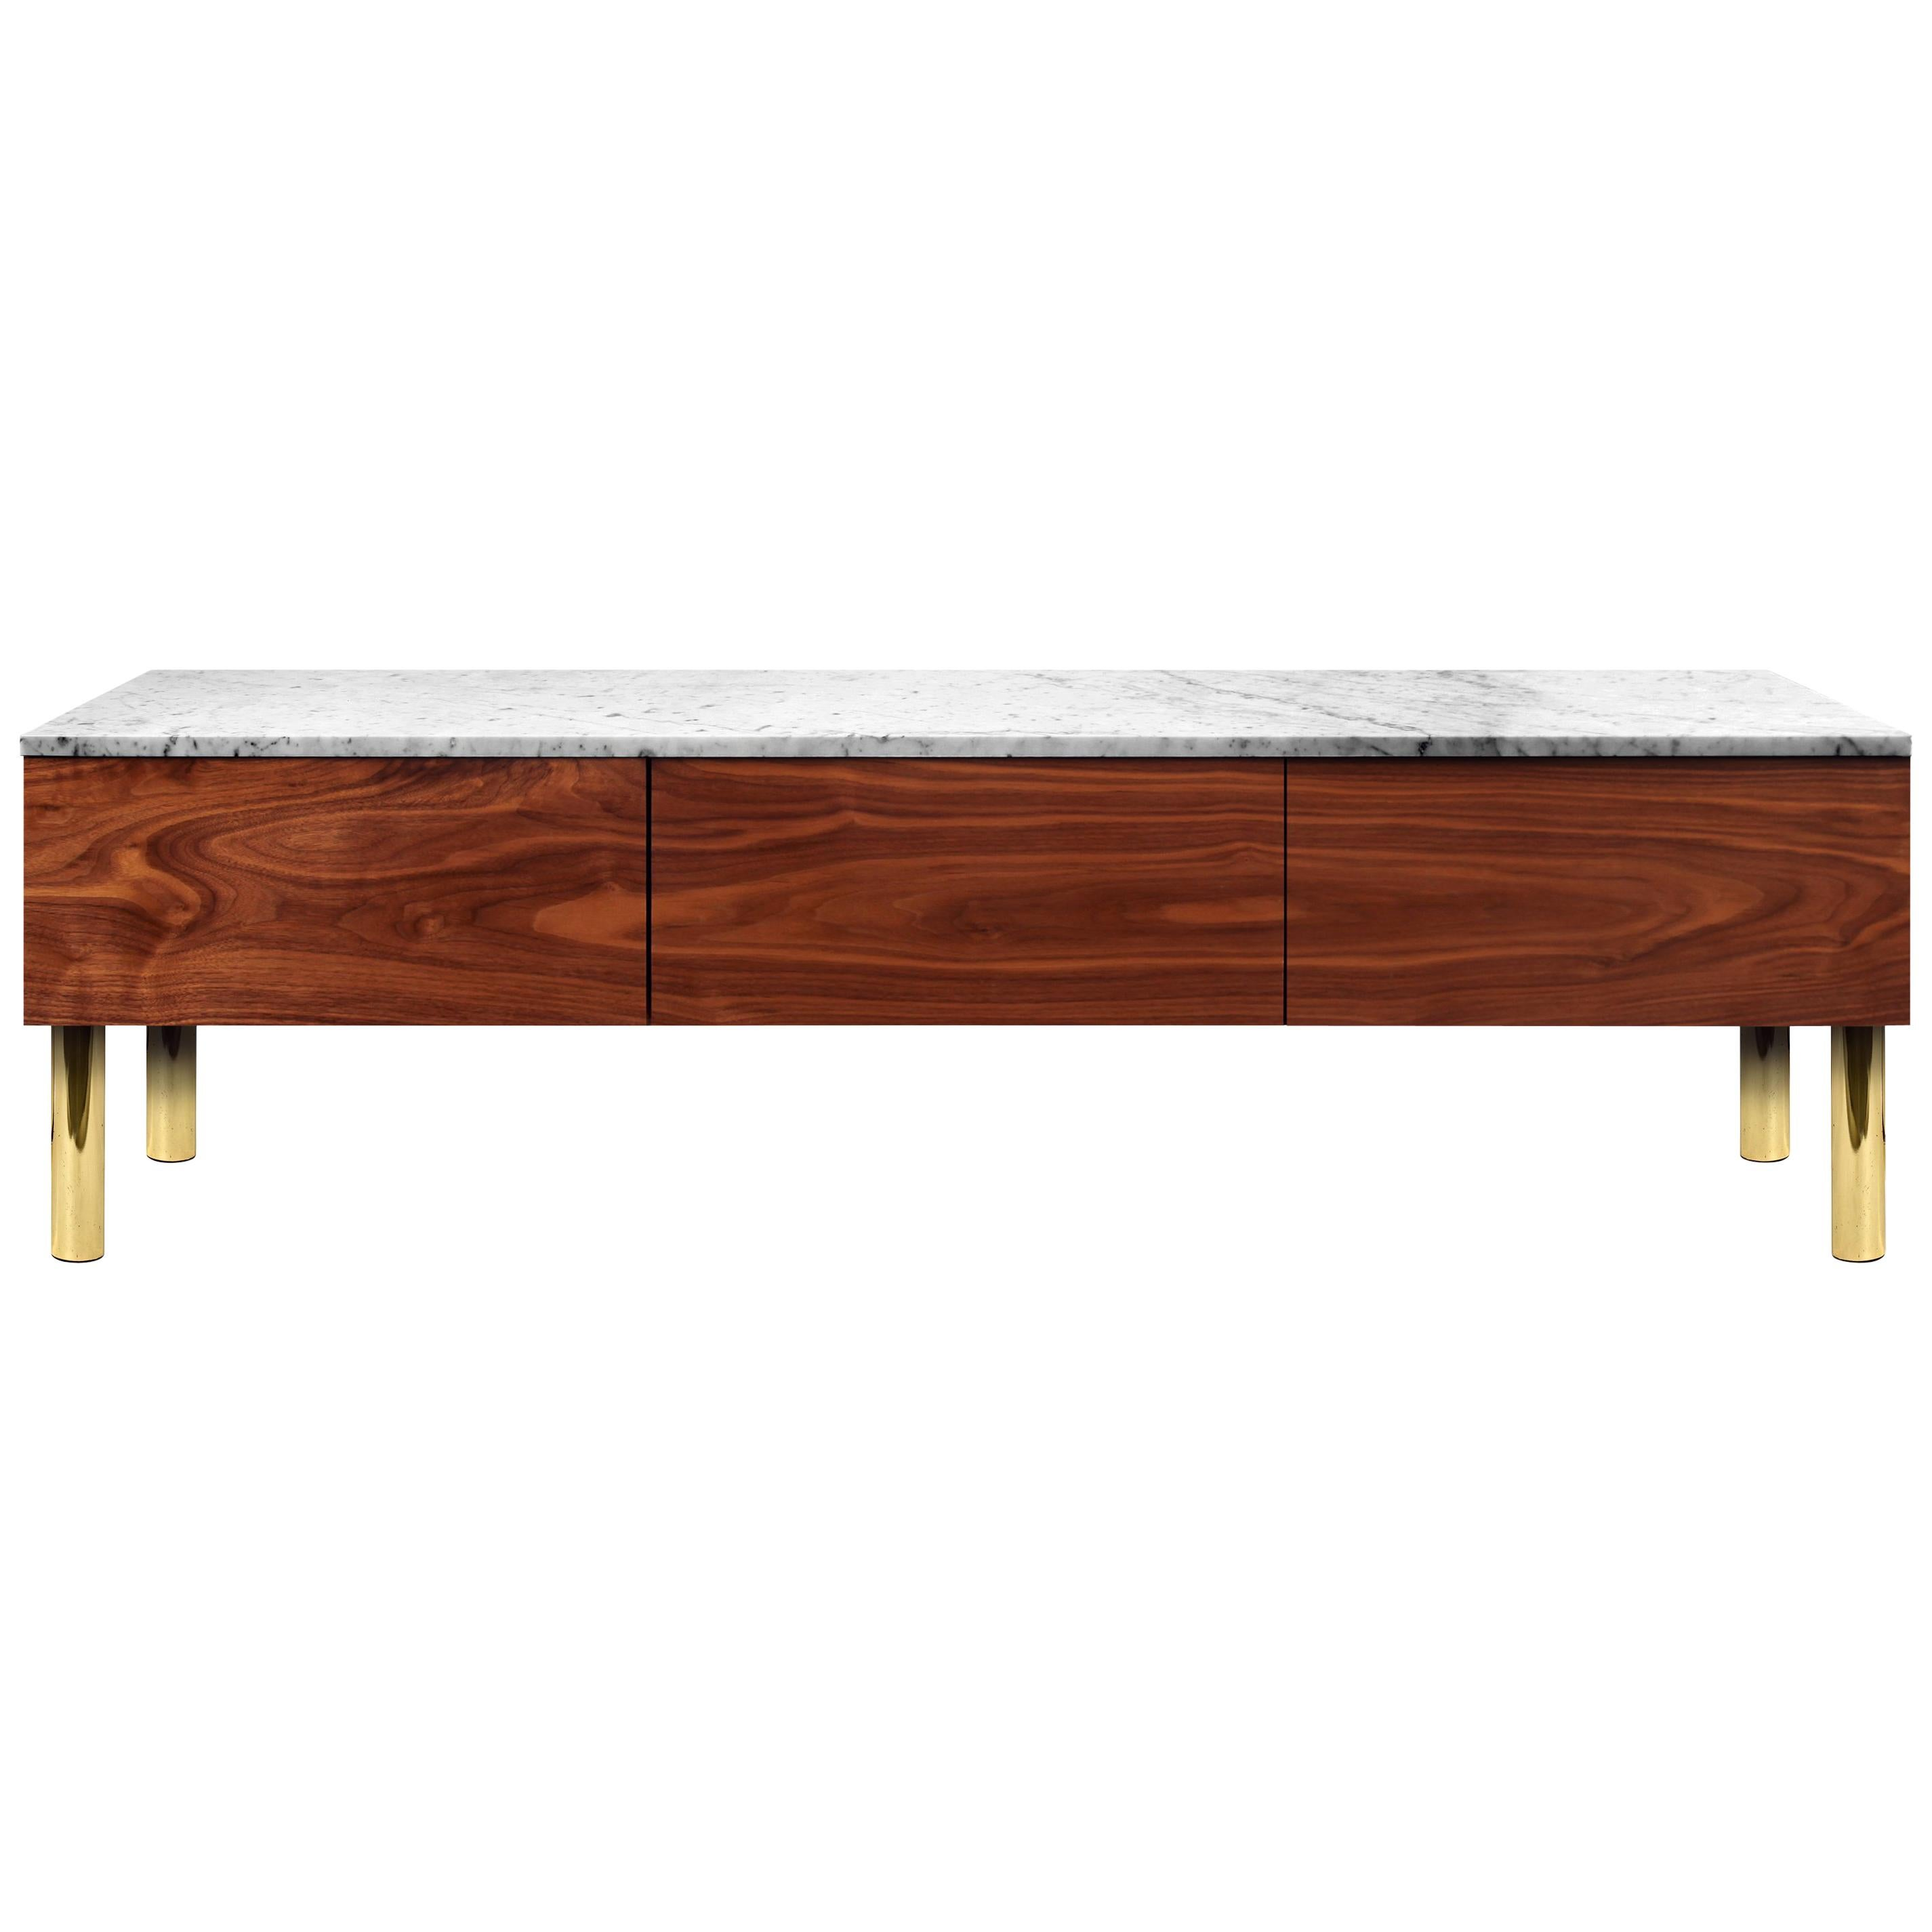 Contemporary HIFOSS Sideboard or Console in Walnut, Brass and Marble